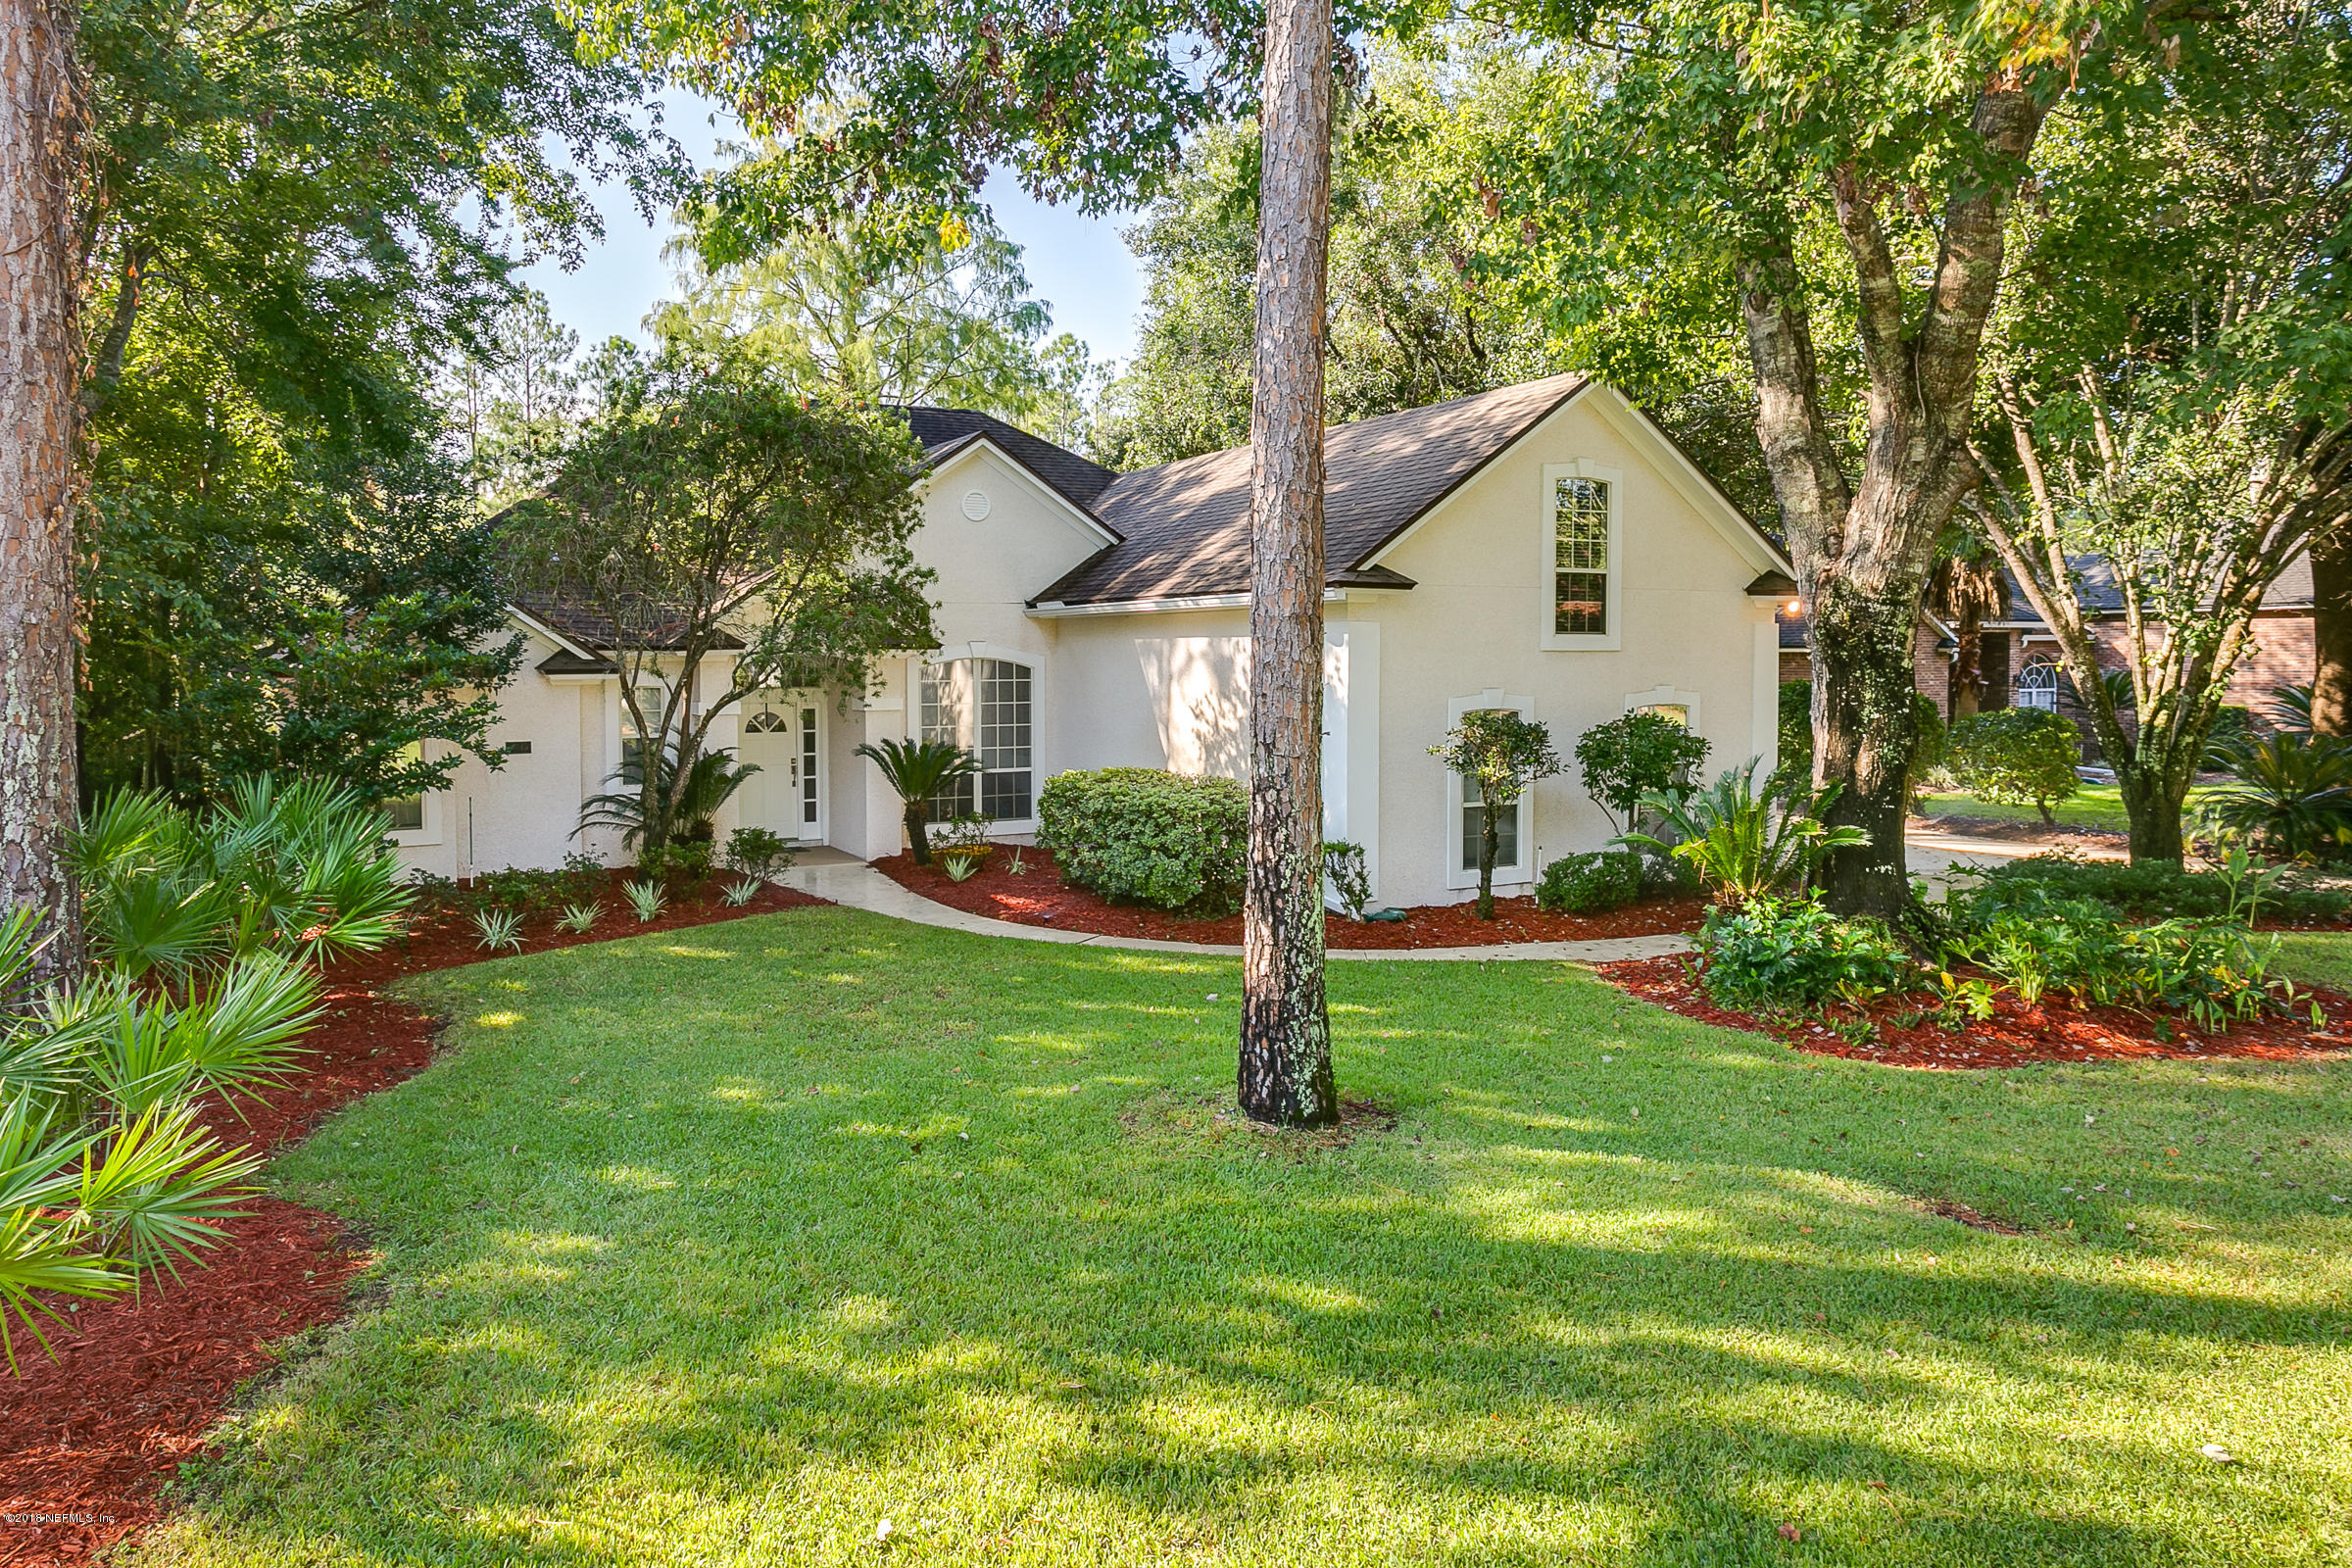 1847 COMMODORE POINT, ORANGE PARK, FLORIDA 32003, 4 Bedrooms Bedrooms, ,3 BathroomsBathrooms,Residential - single family,For sale,COMMODORE POINT,962419